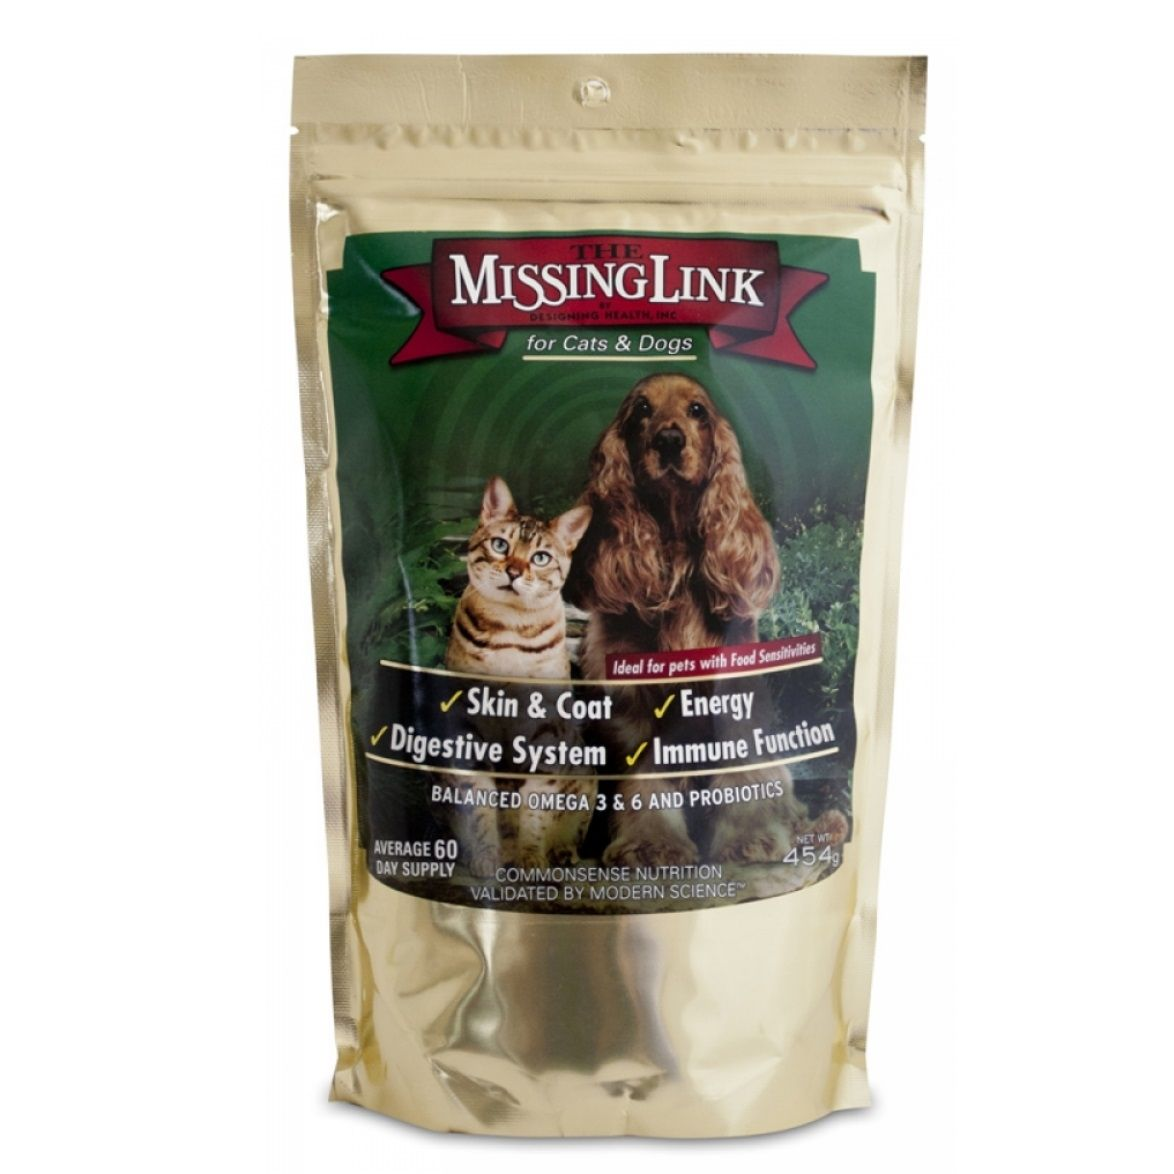 The Missing Link Original Blend For Dogs Cats 454g Superfood Supplements Digestive Function Biodegradable Products